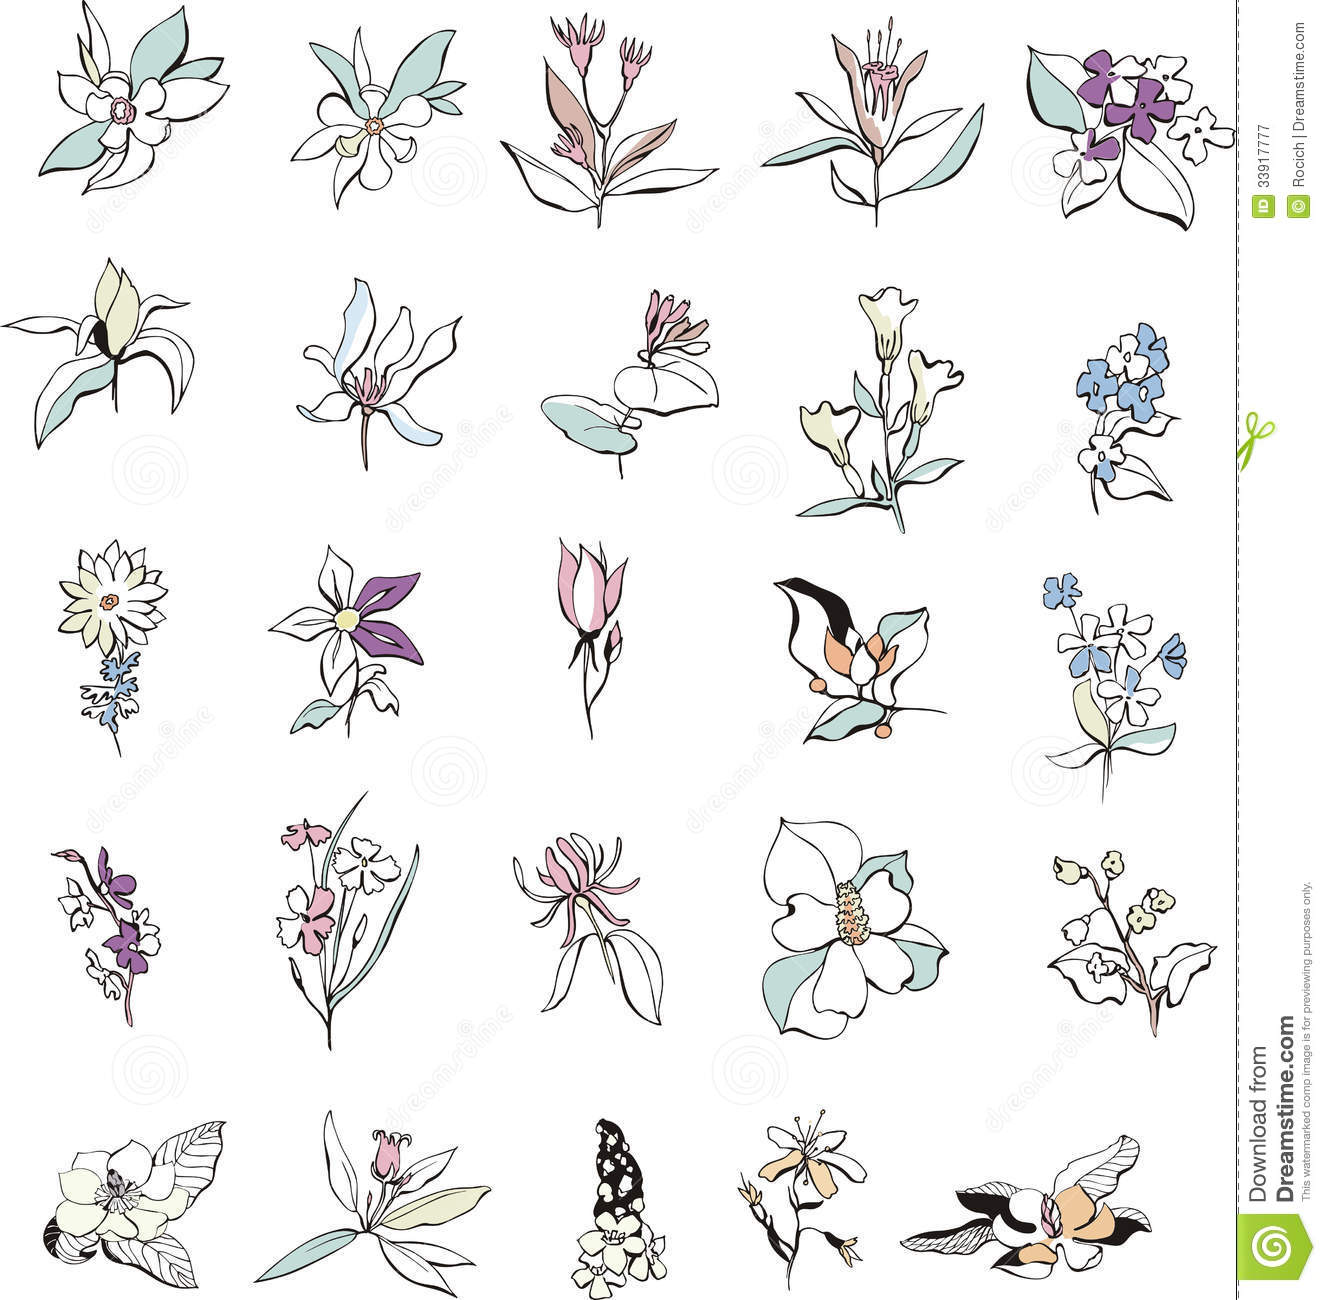 Simple Flower Sketches Royalty Free Stock Photography Image